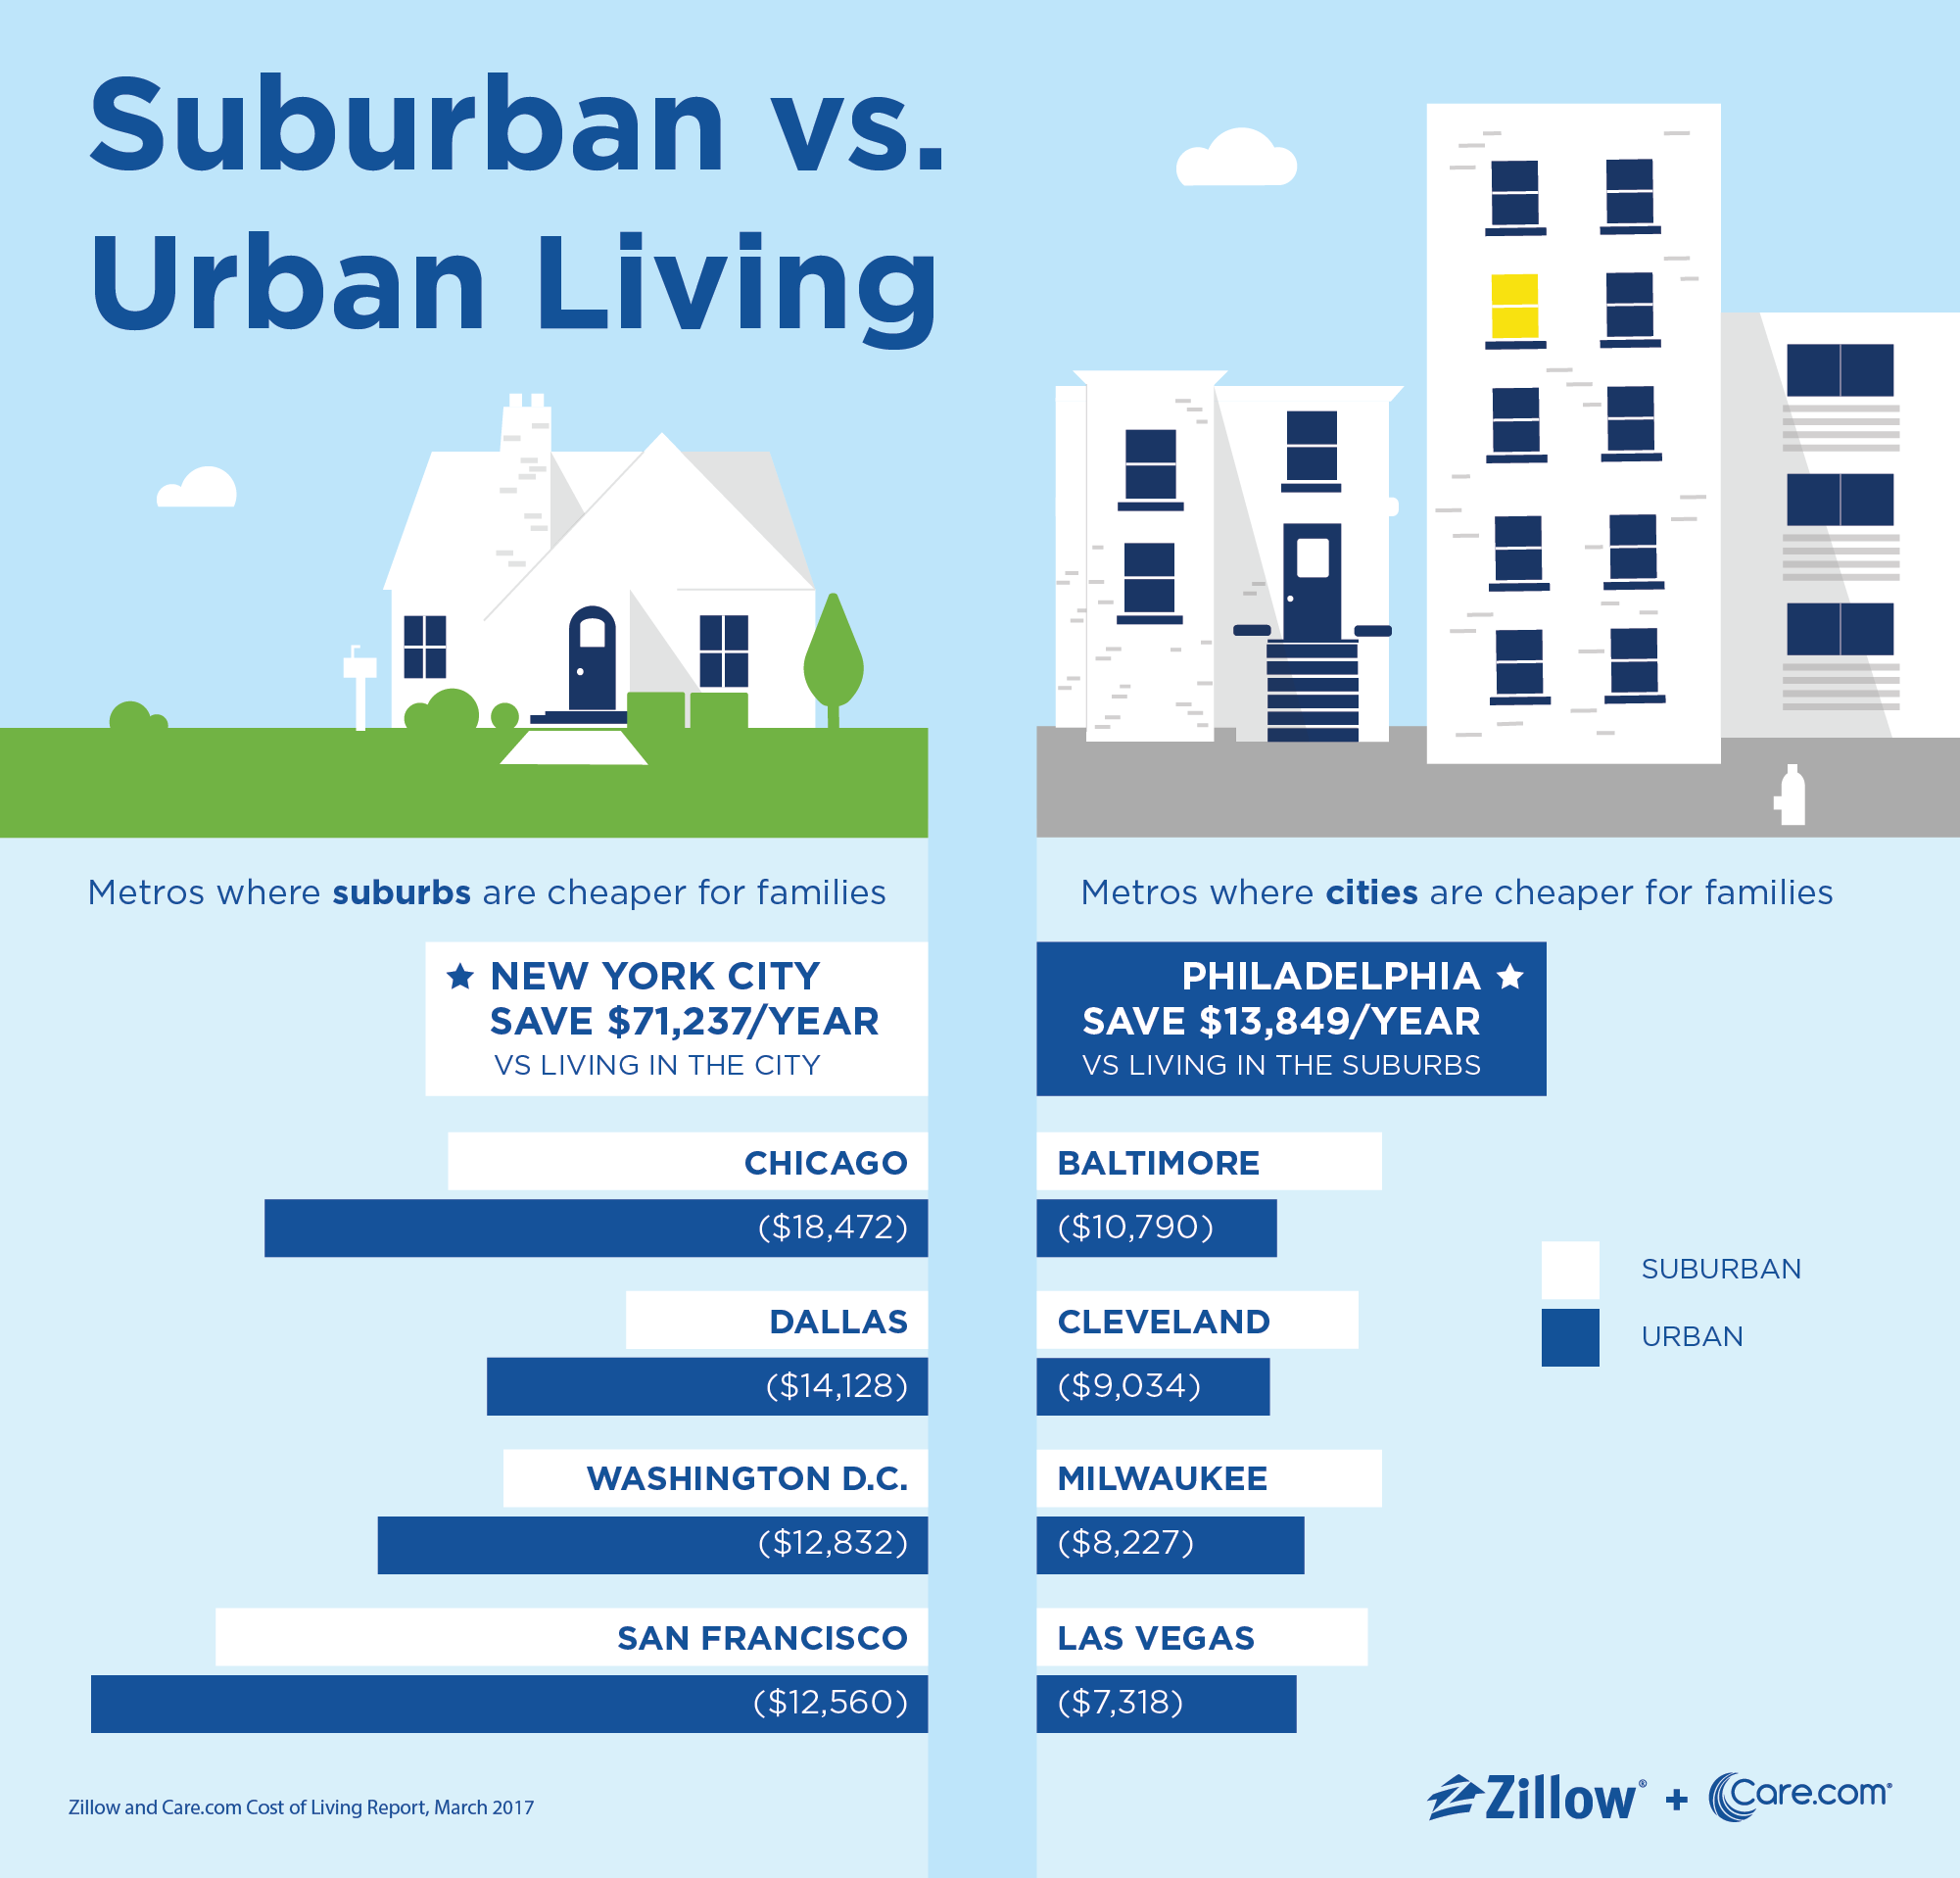 city living costs families up to $9 000 more a year than suburban